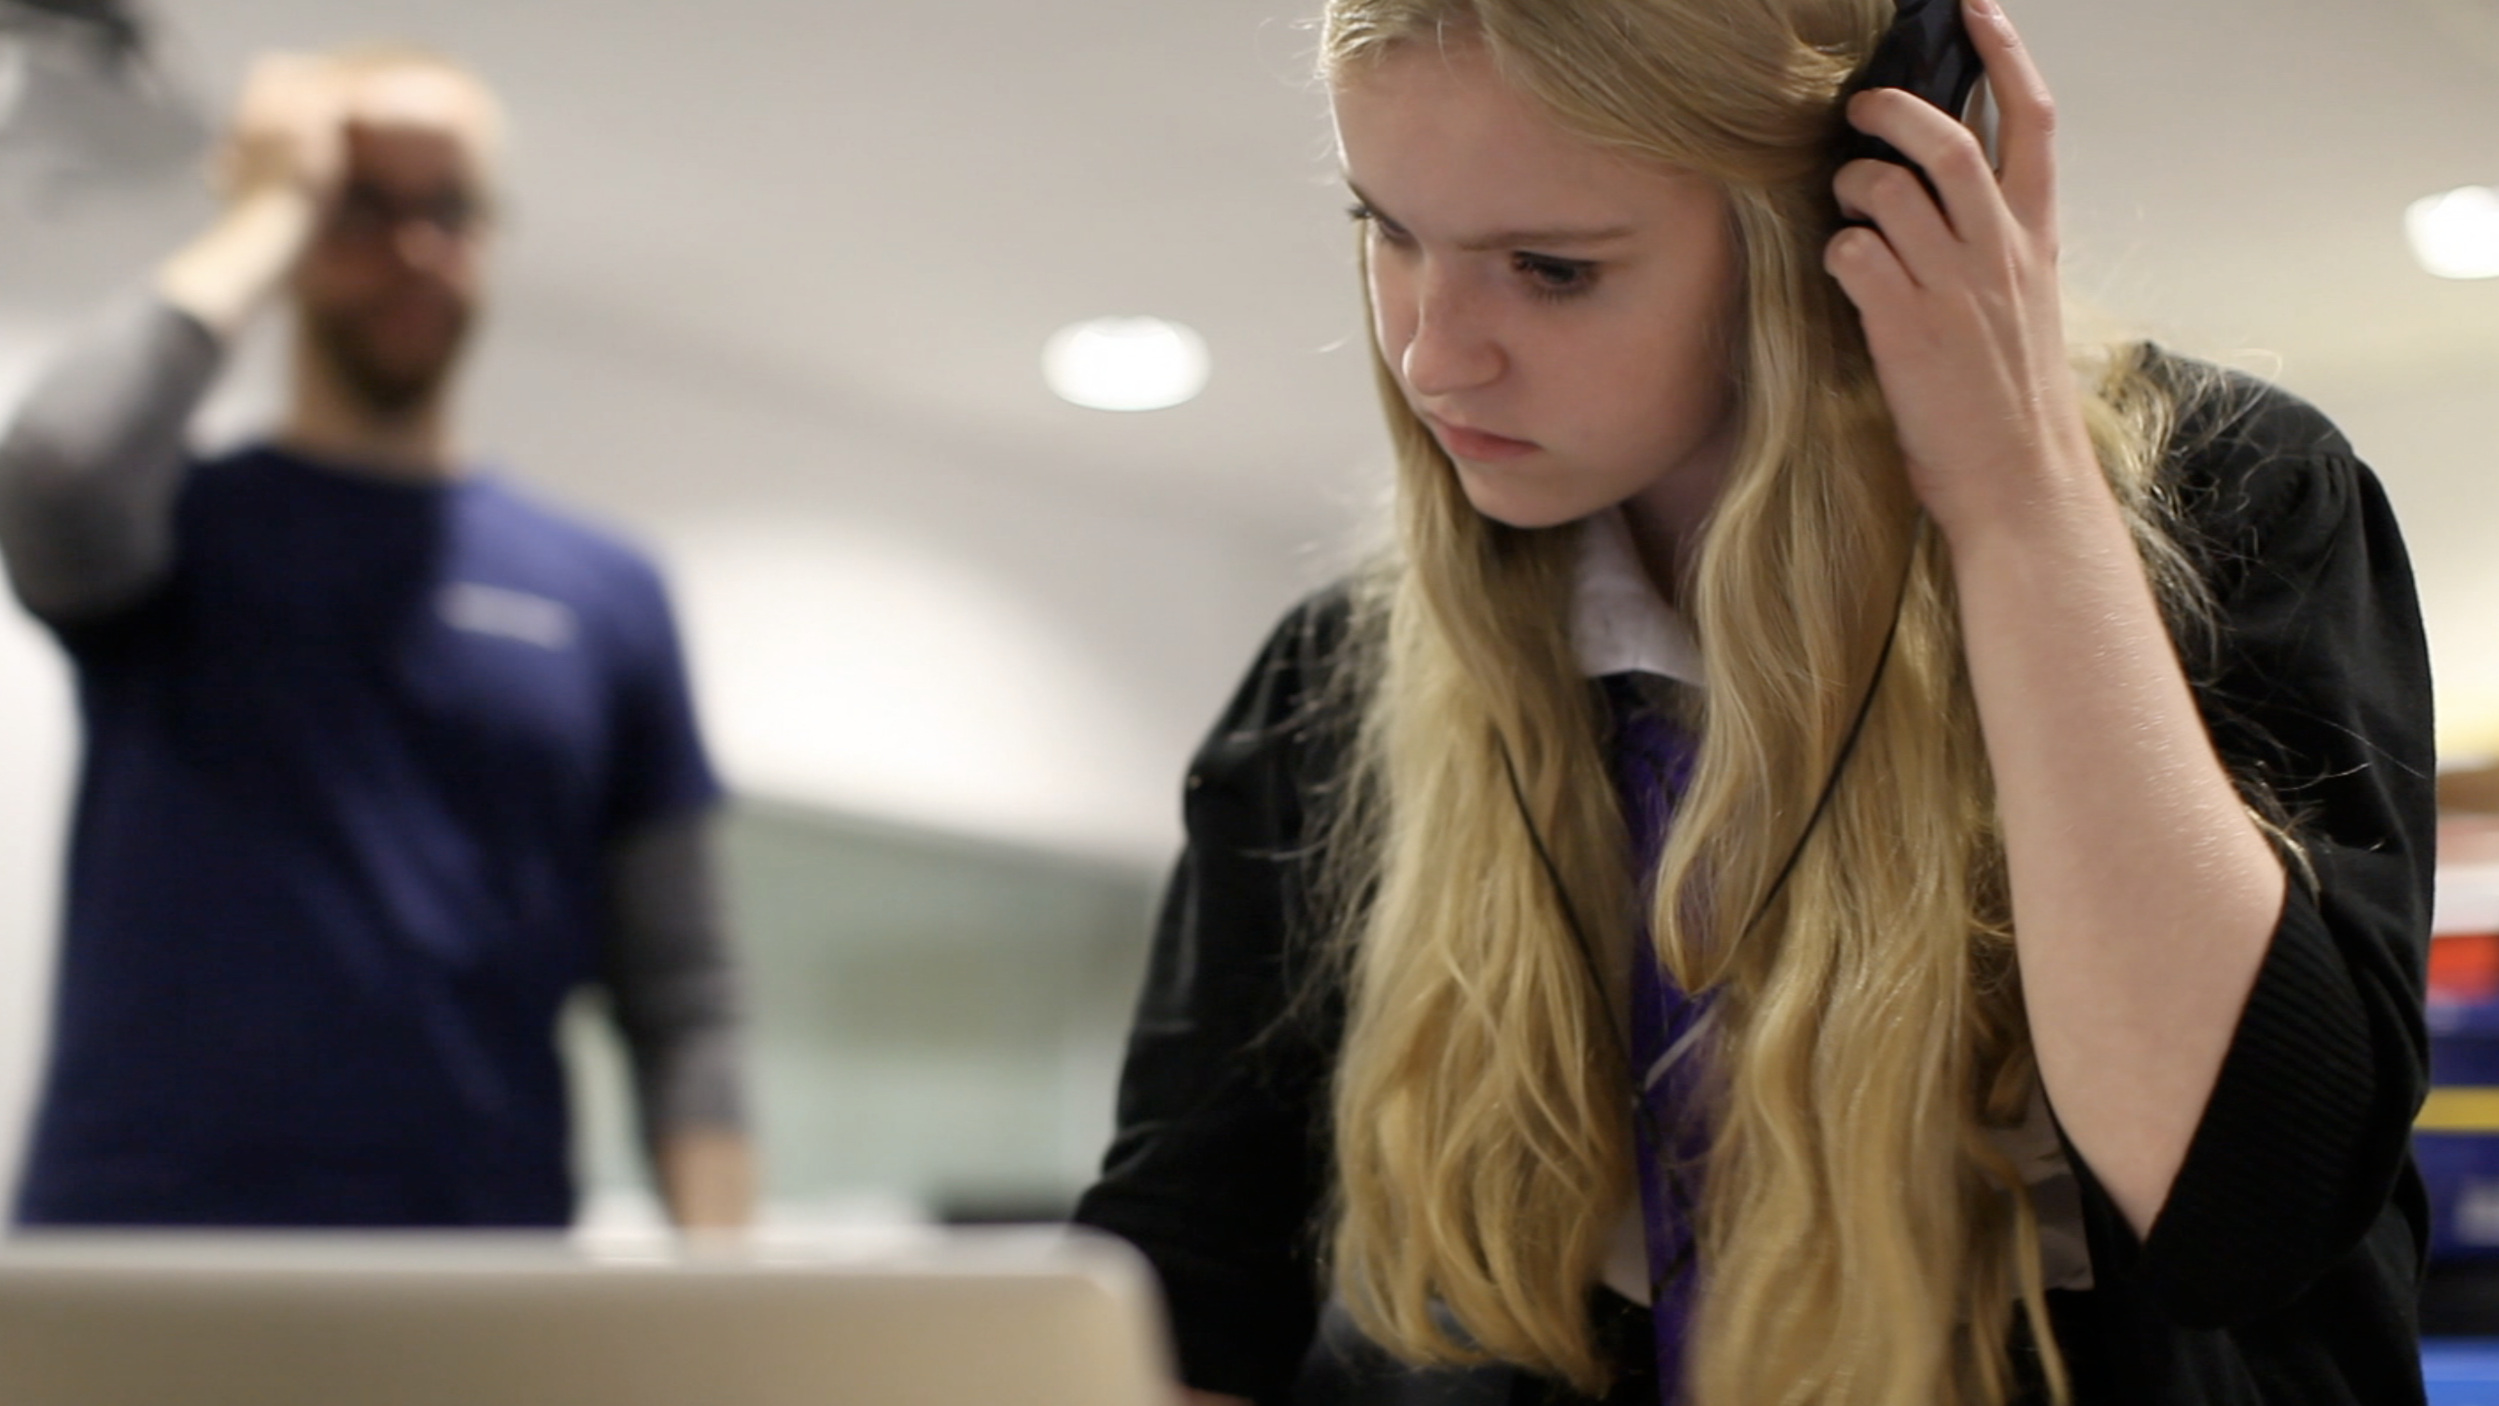 Technology in Schools - We increase opportunities and improve facilities for young people, teachers and schools.